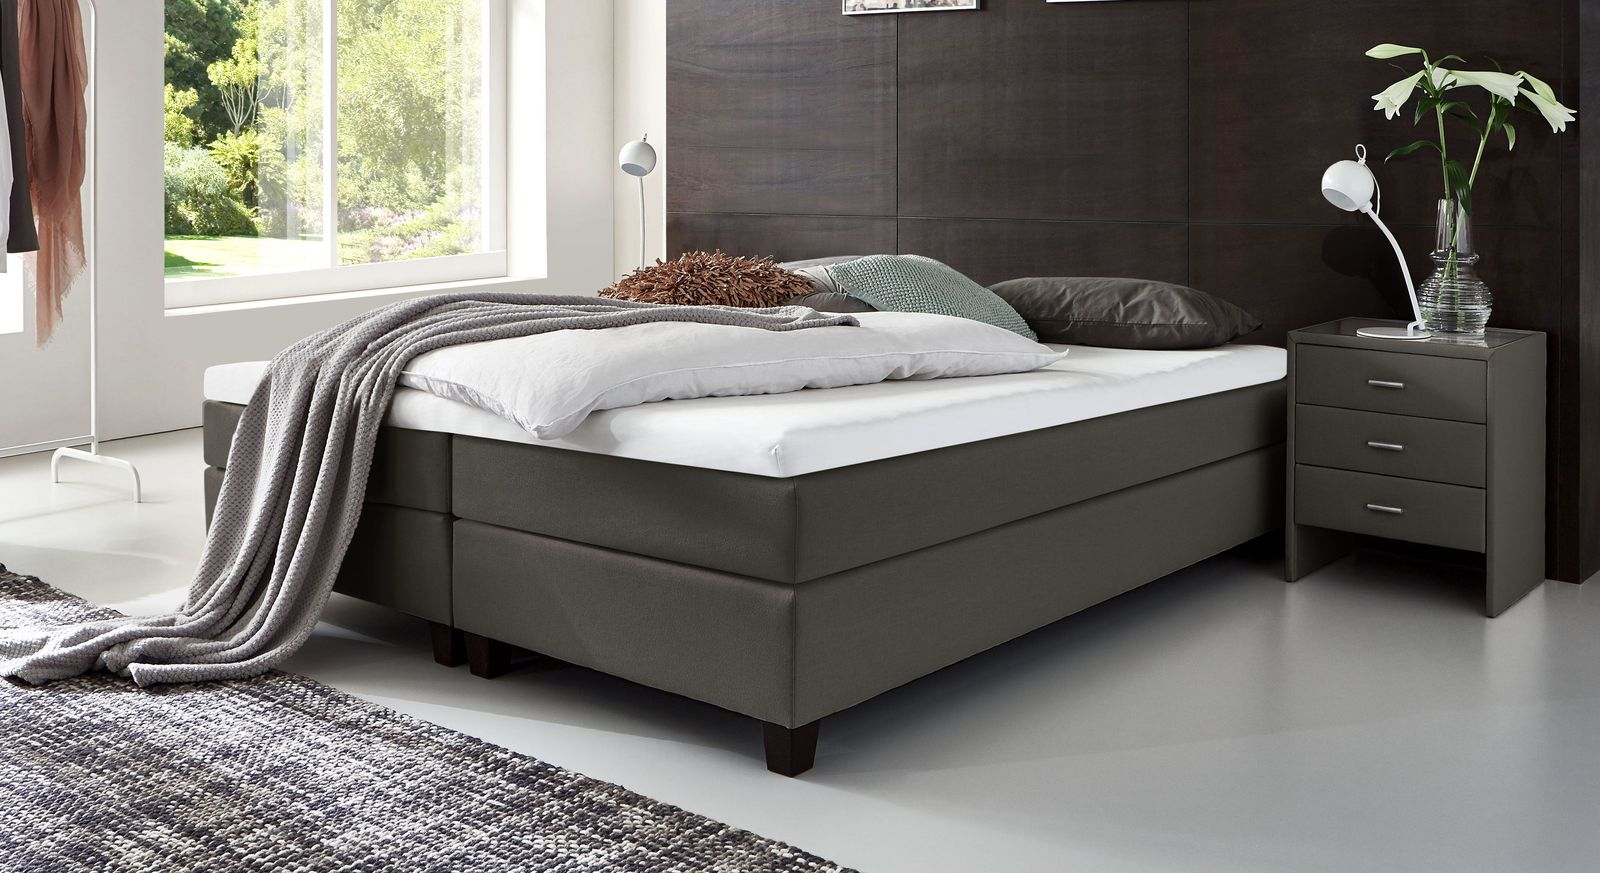 53 cm hohe Boxspringliege Luciano aus Webstoff in Anthrazit